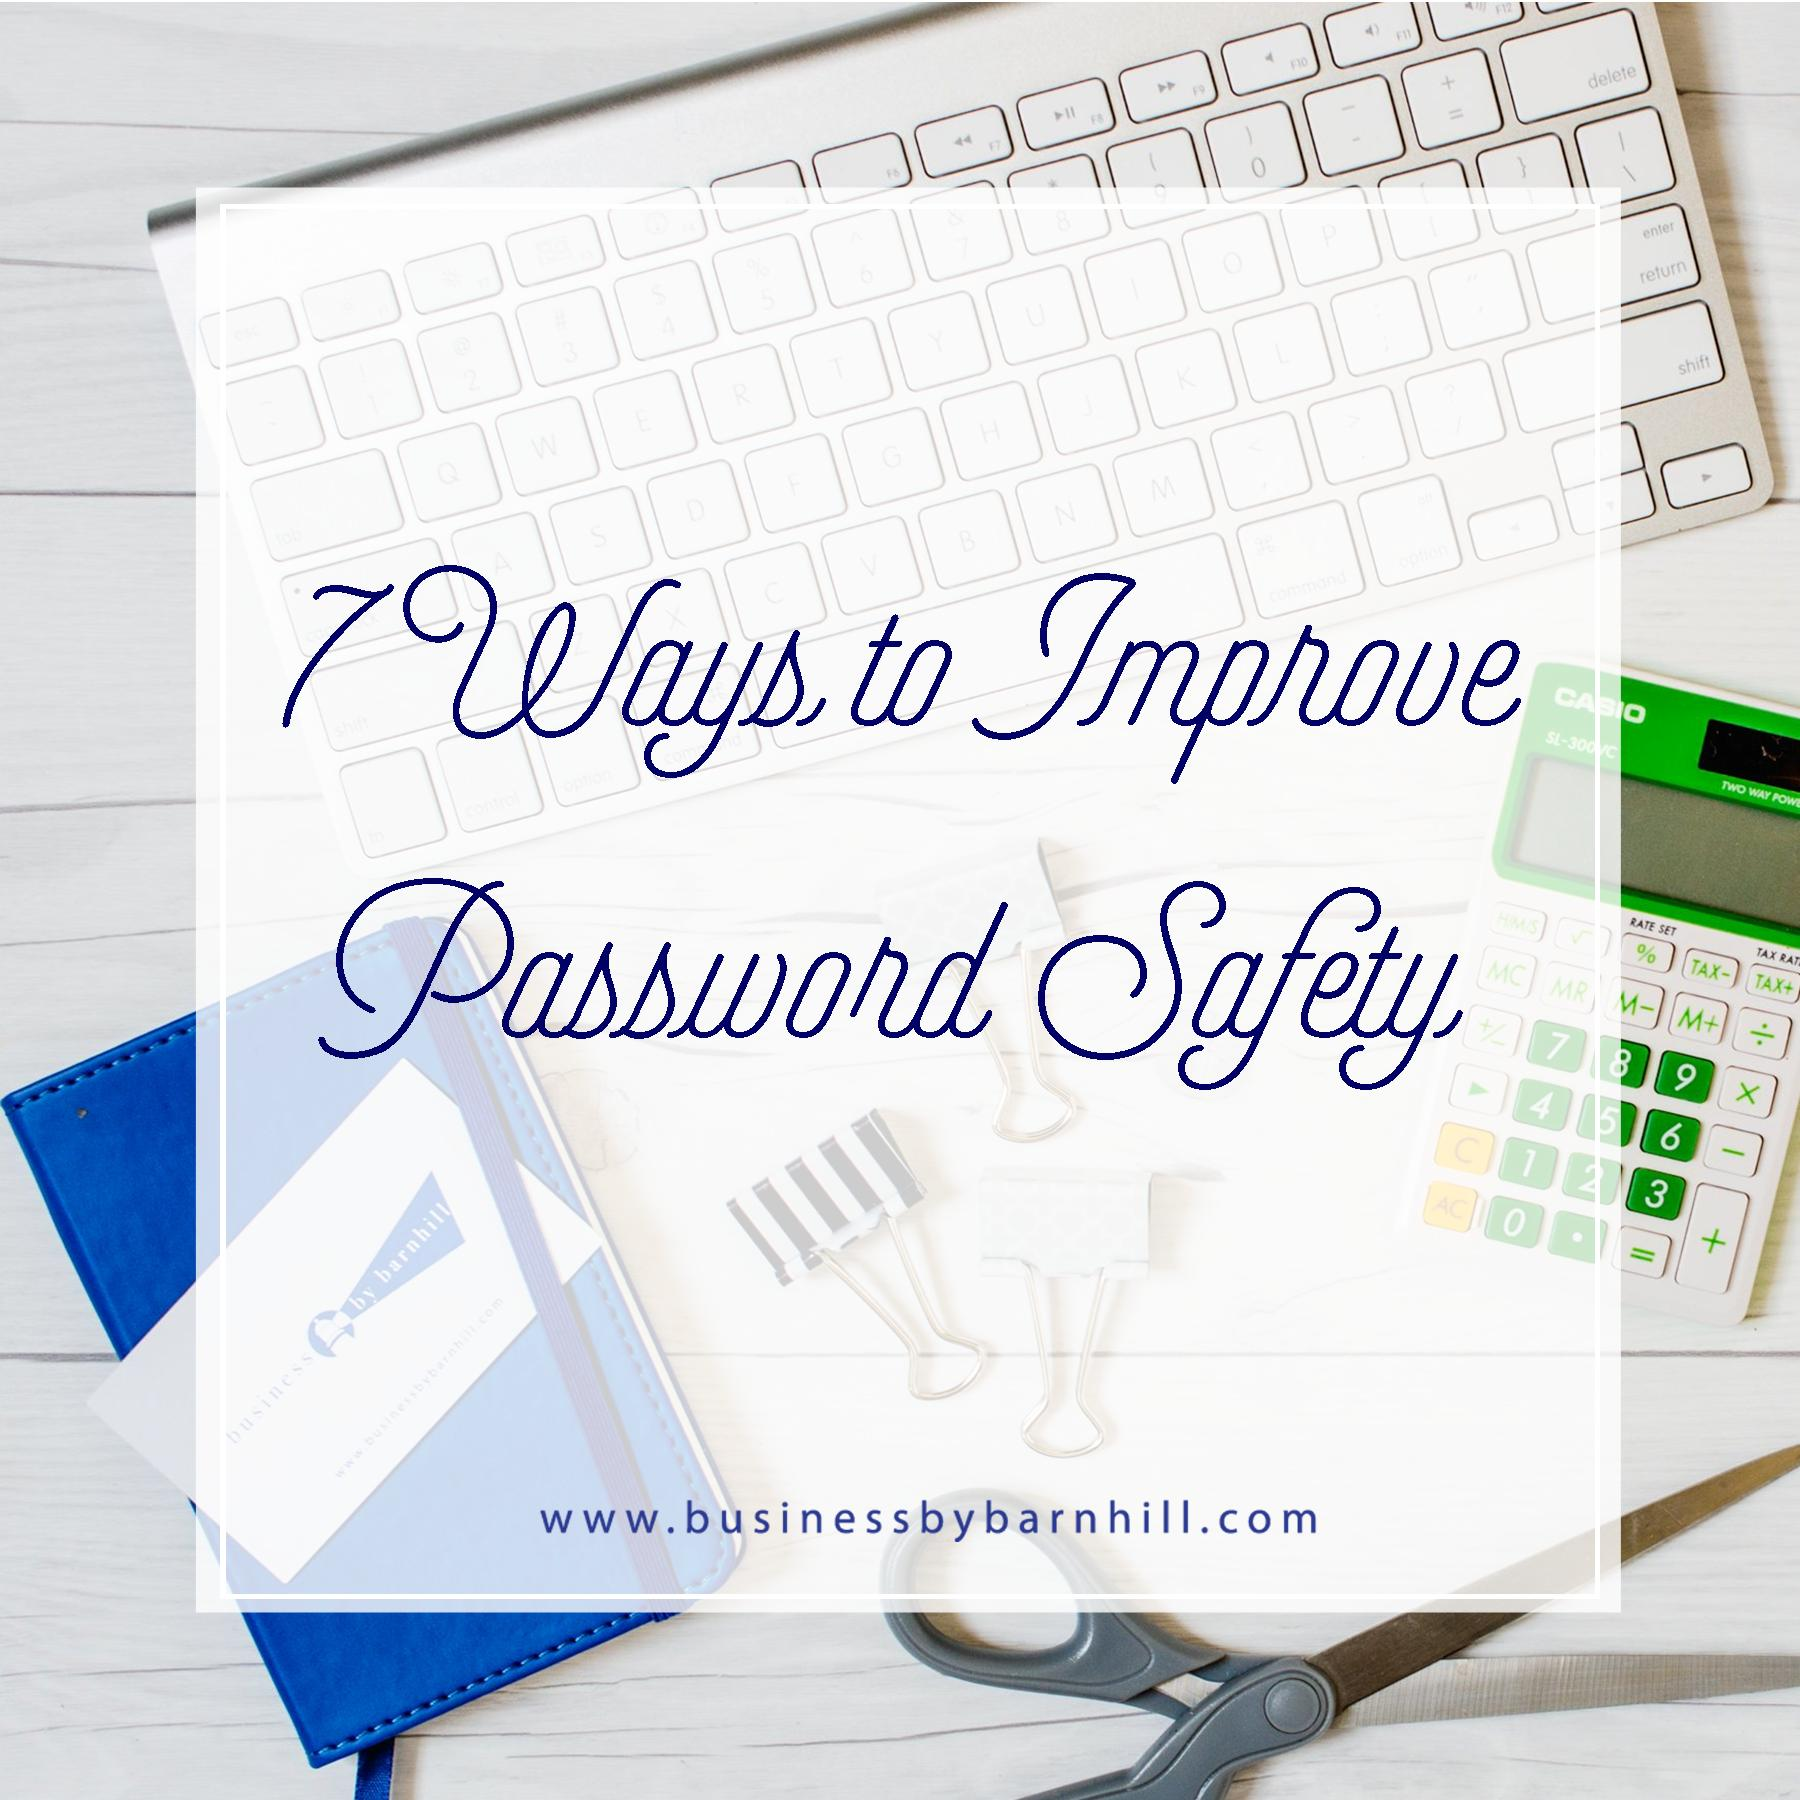 business by barnhill 7 ways to improve password safety.jpg